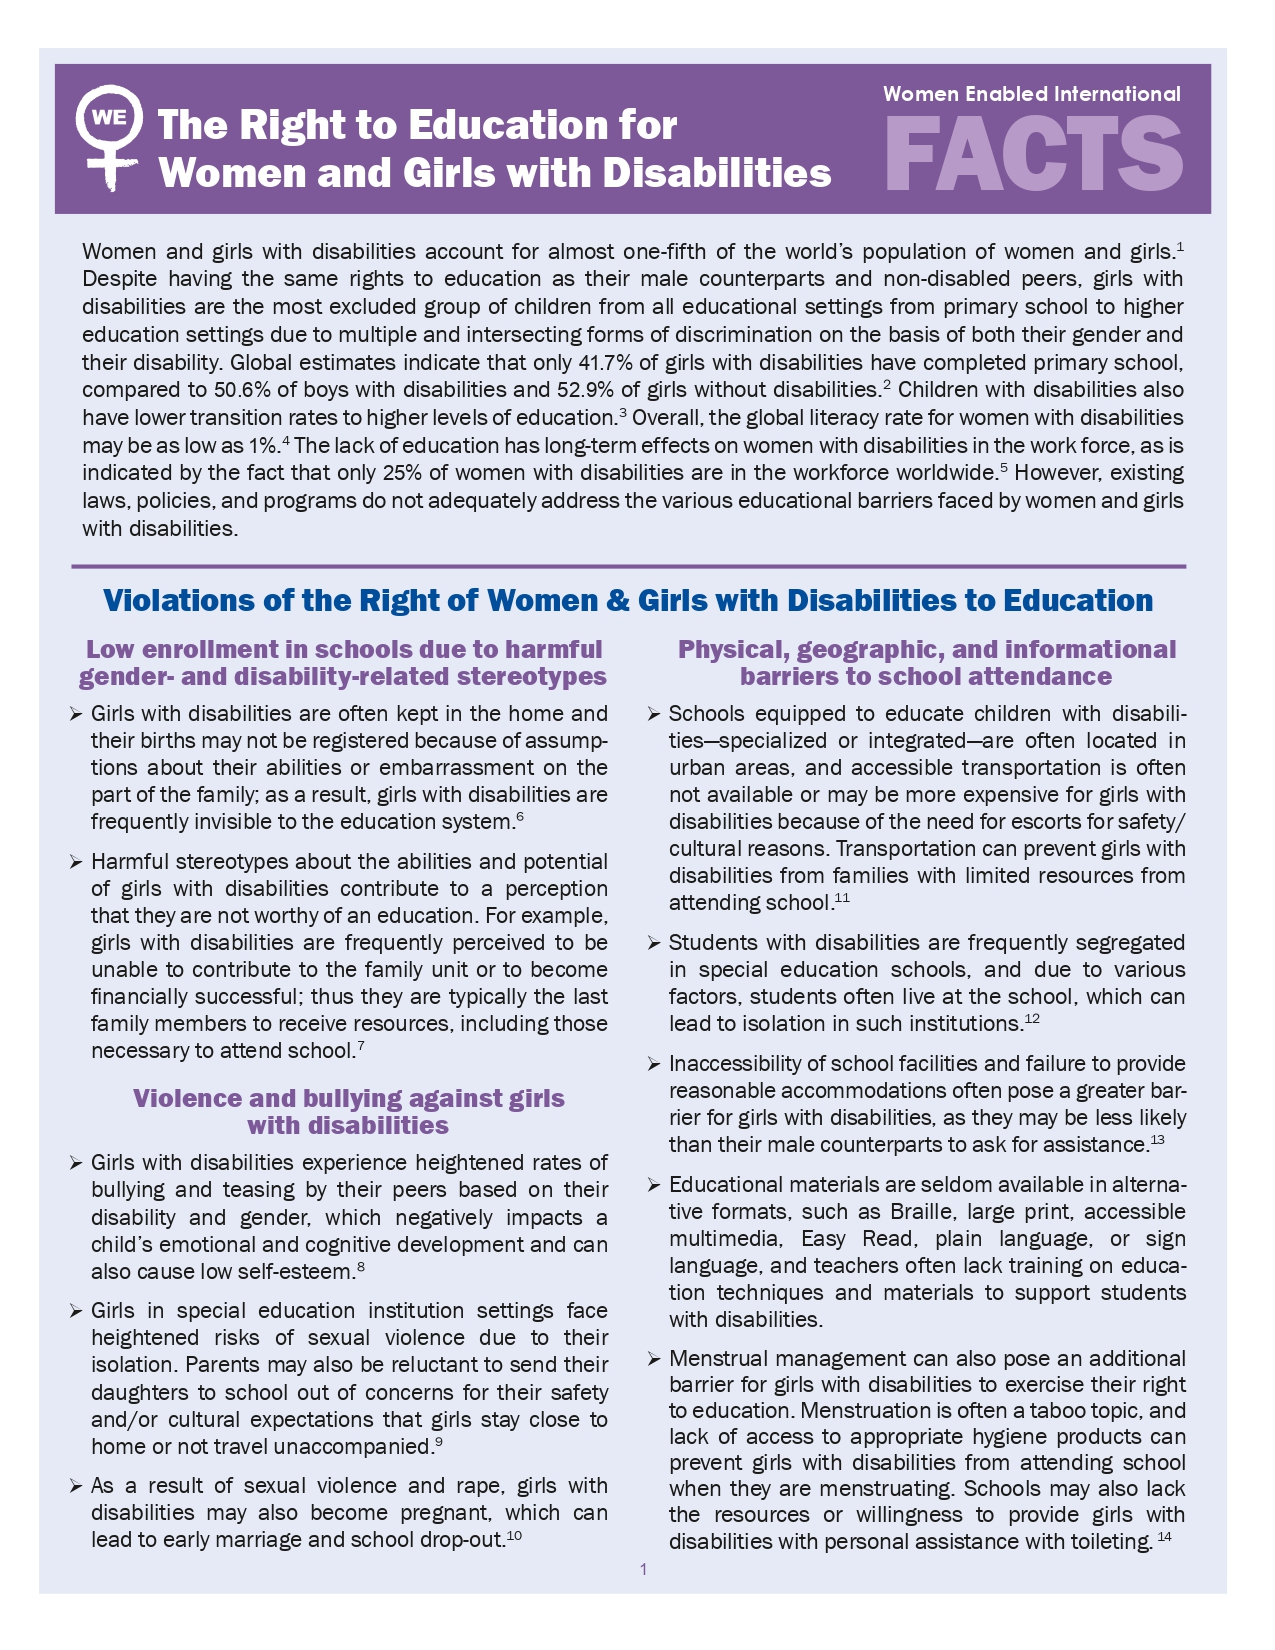 The Right to Education for Women and Girls with Disabilities